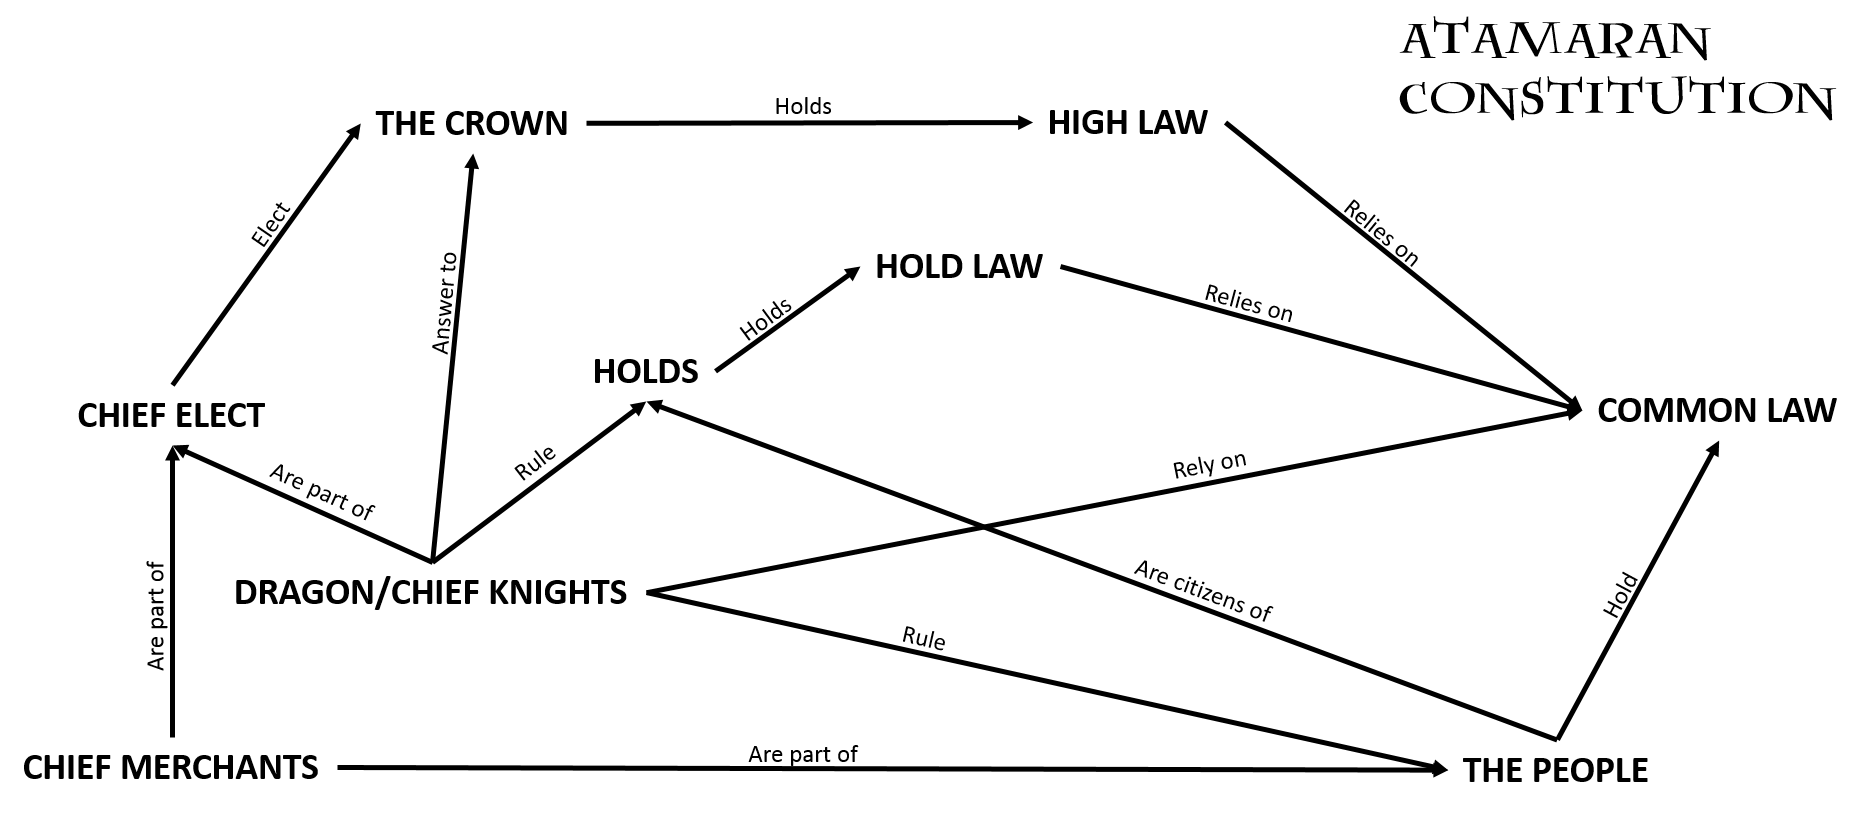 hight resolution of diagram of common law